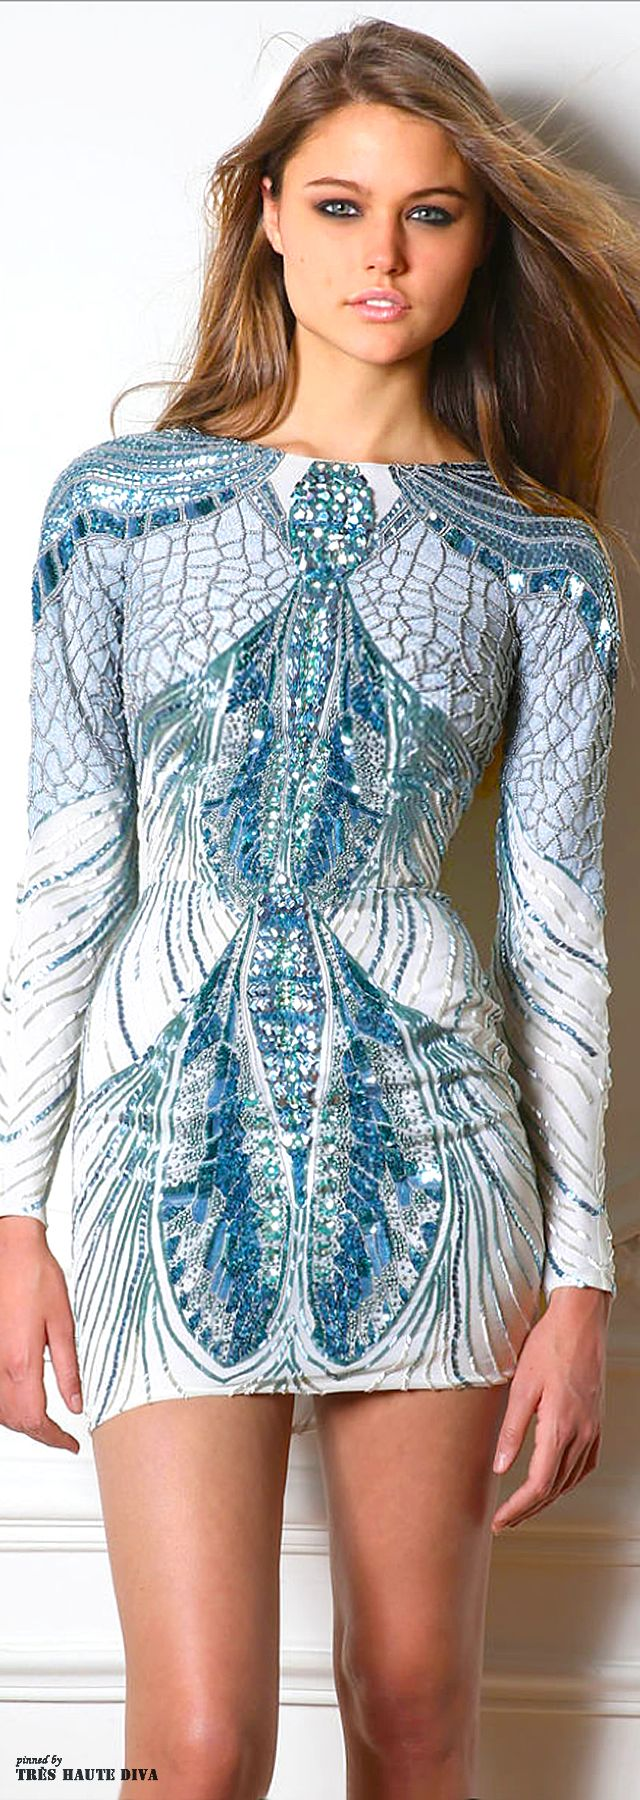 Zuhair Murad Fall 2014. This fun, sultry little number reminds me of both a fly, and peacocks all in one. The intricate detailing and jeweling is phenomenal.